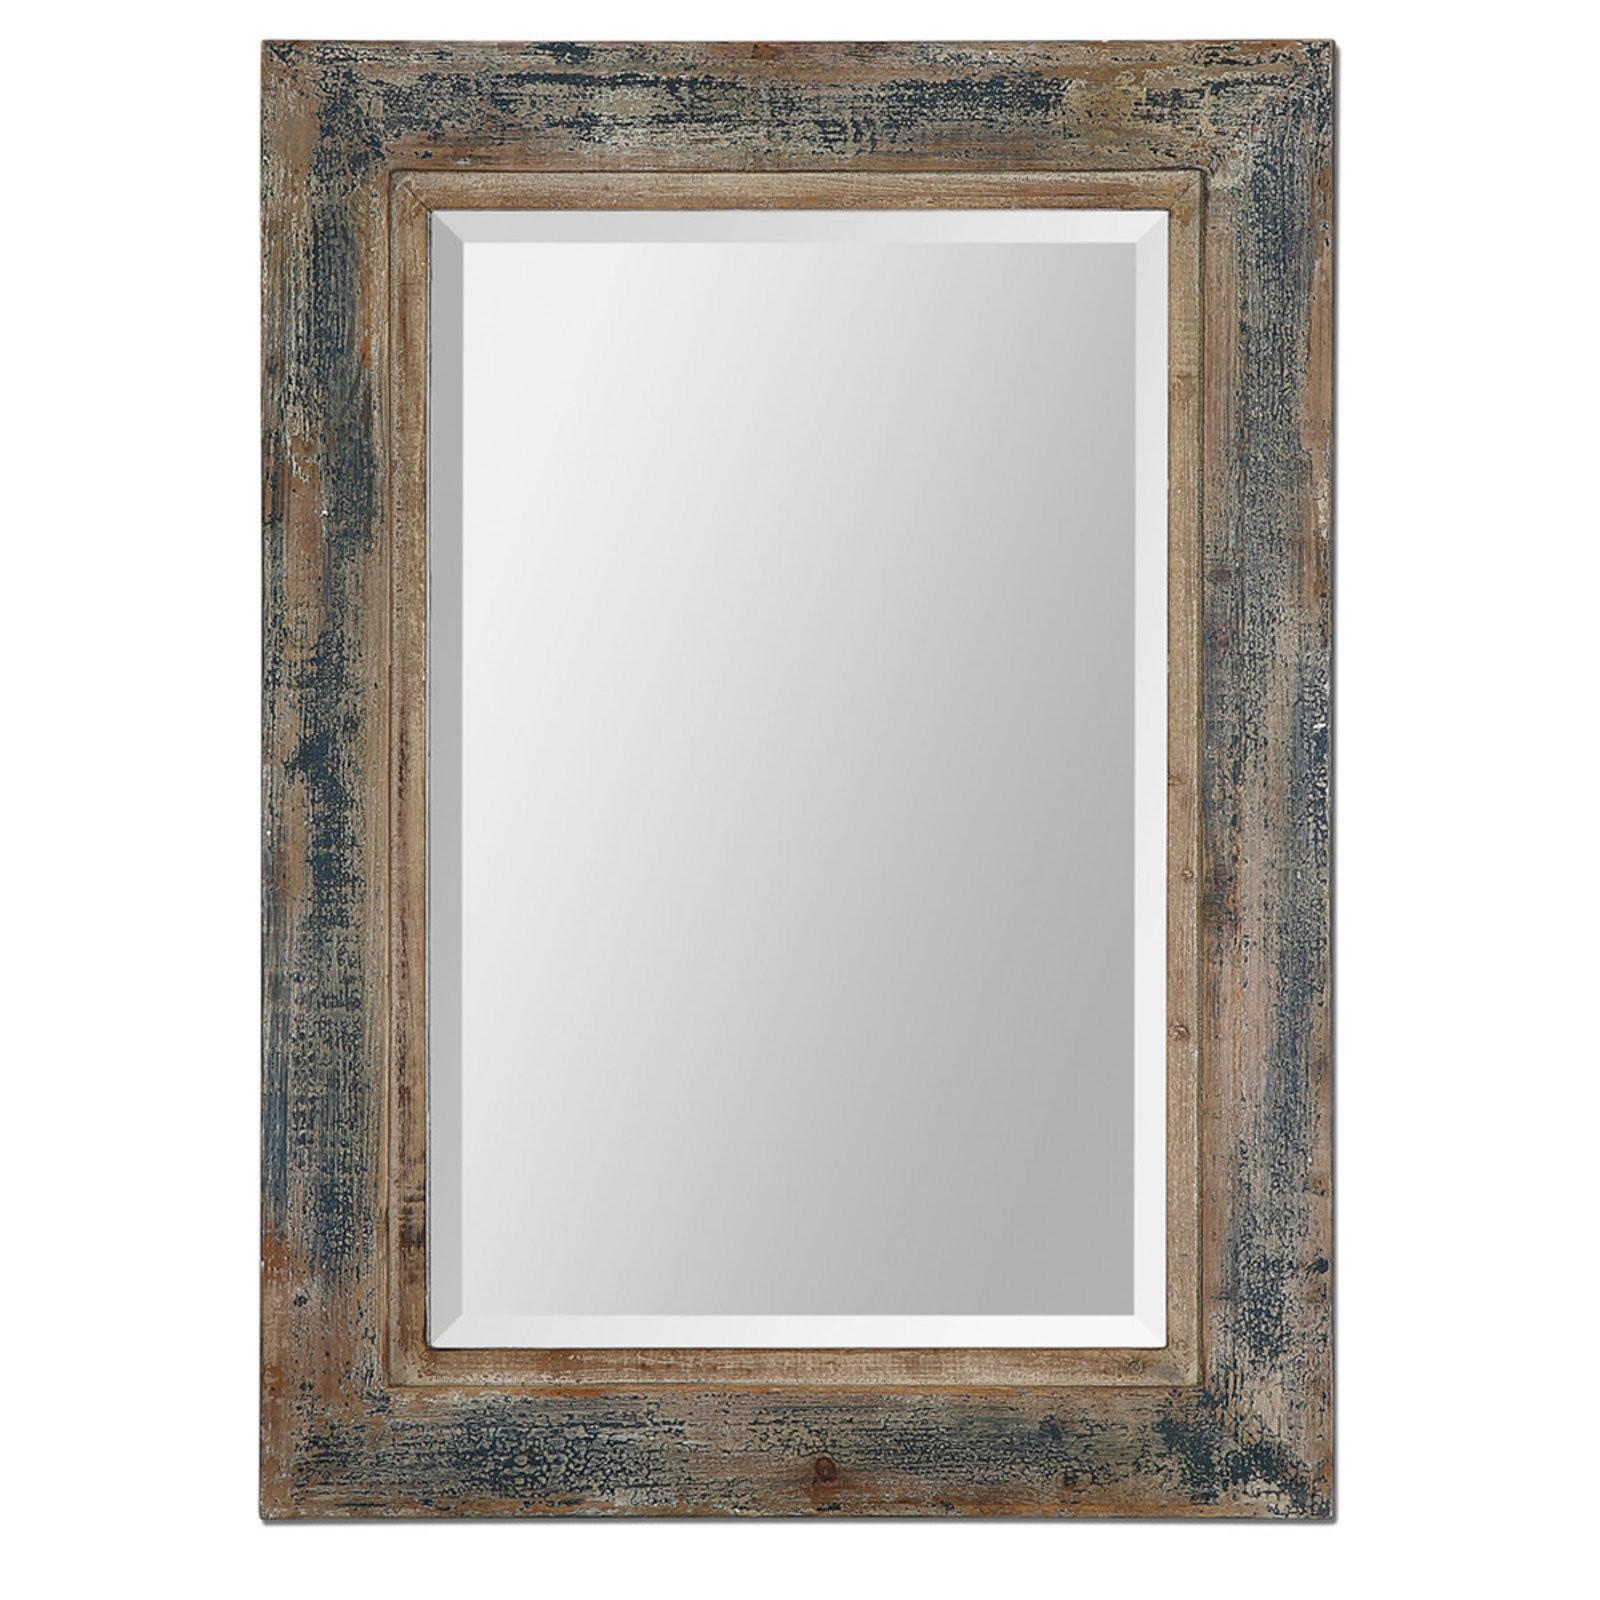 Distressed Tinted Plank Mirror Shades Light